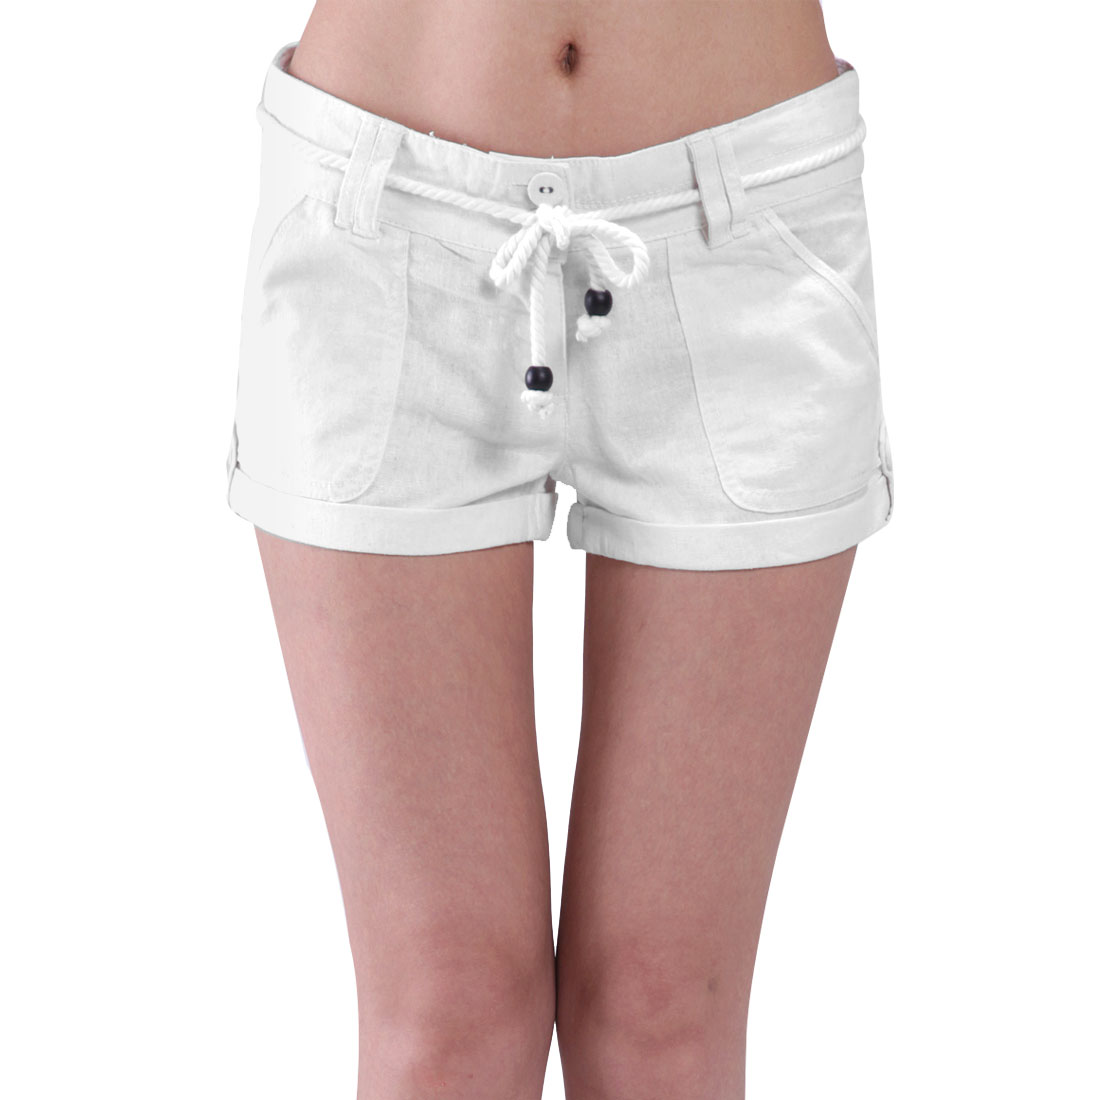 Woman Solid White Charming Belt Loop Button Closure Zip Shorts Trousers M